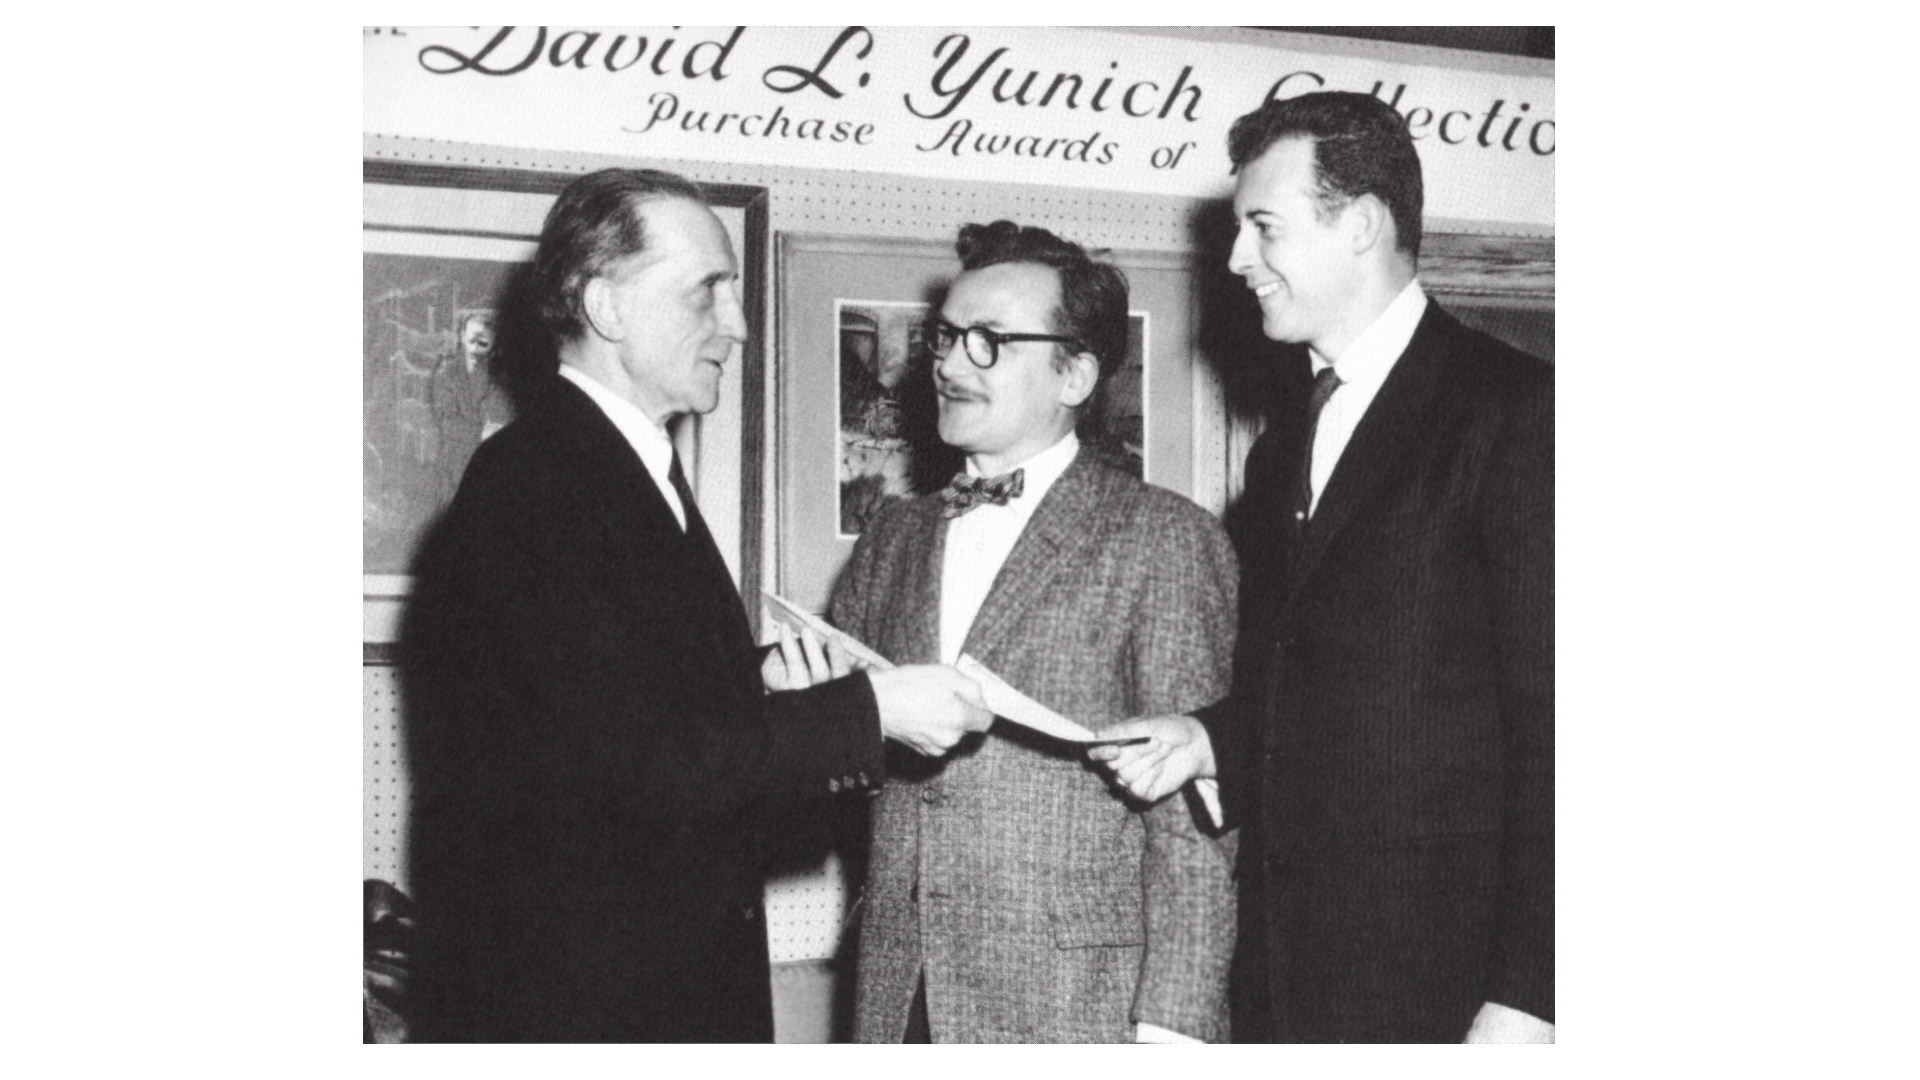 Marcel Duchamp presents Adolph Conrad (center) and W. Carl Burger (right) an award, 1960